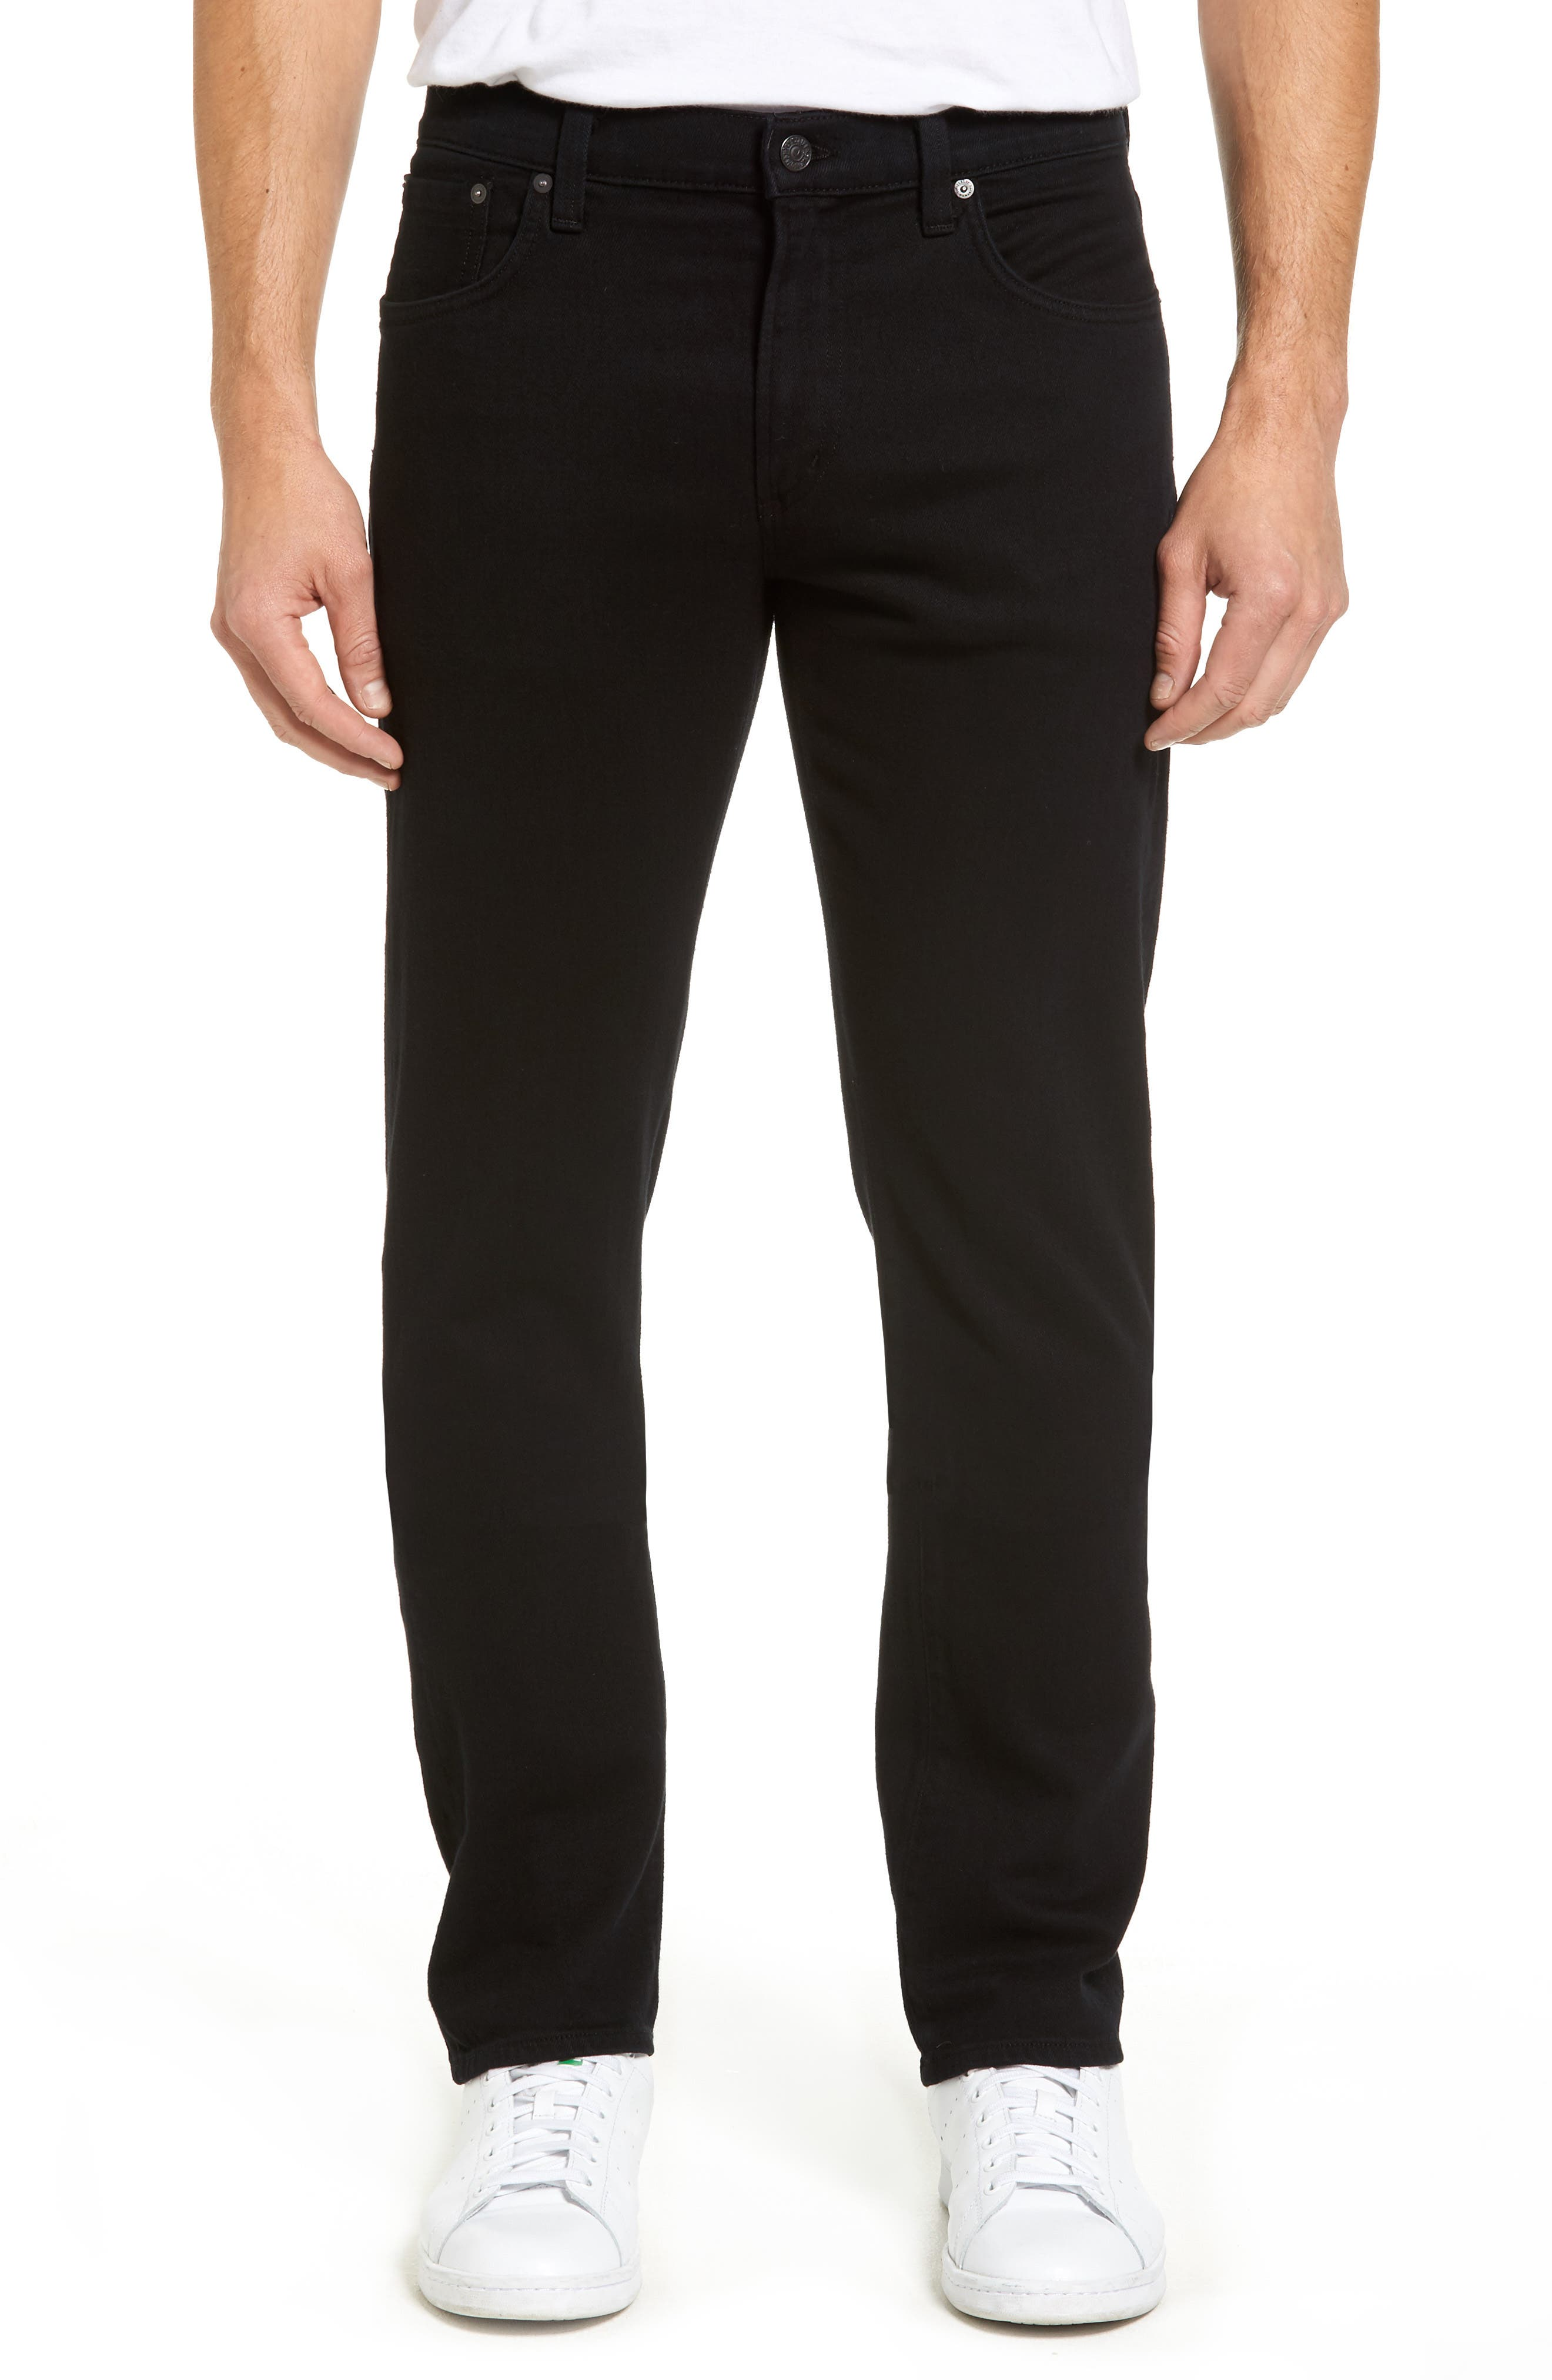 Alternate Image 1 Selected - Citizens of Humanity Core Slim Straight Leg Jeans (Midnight) (Tall)